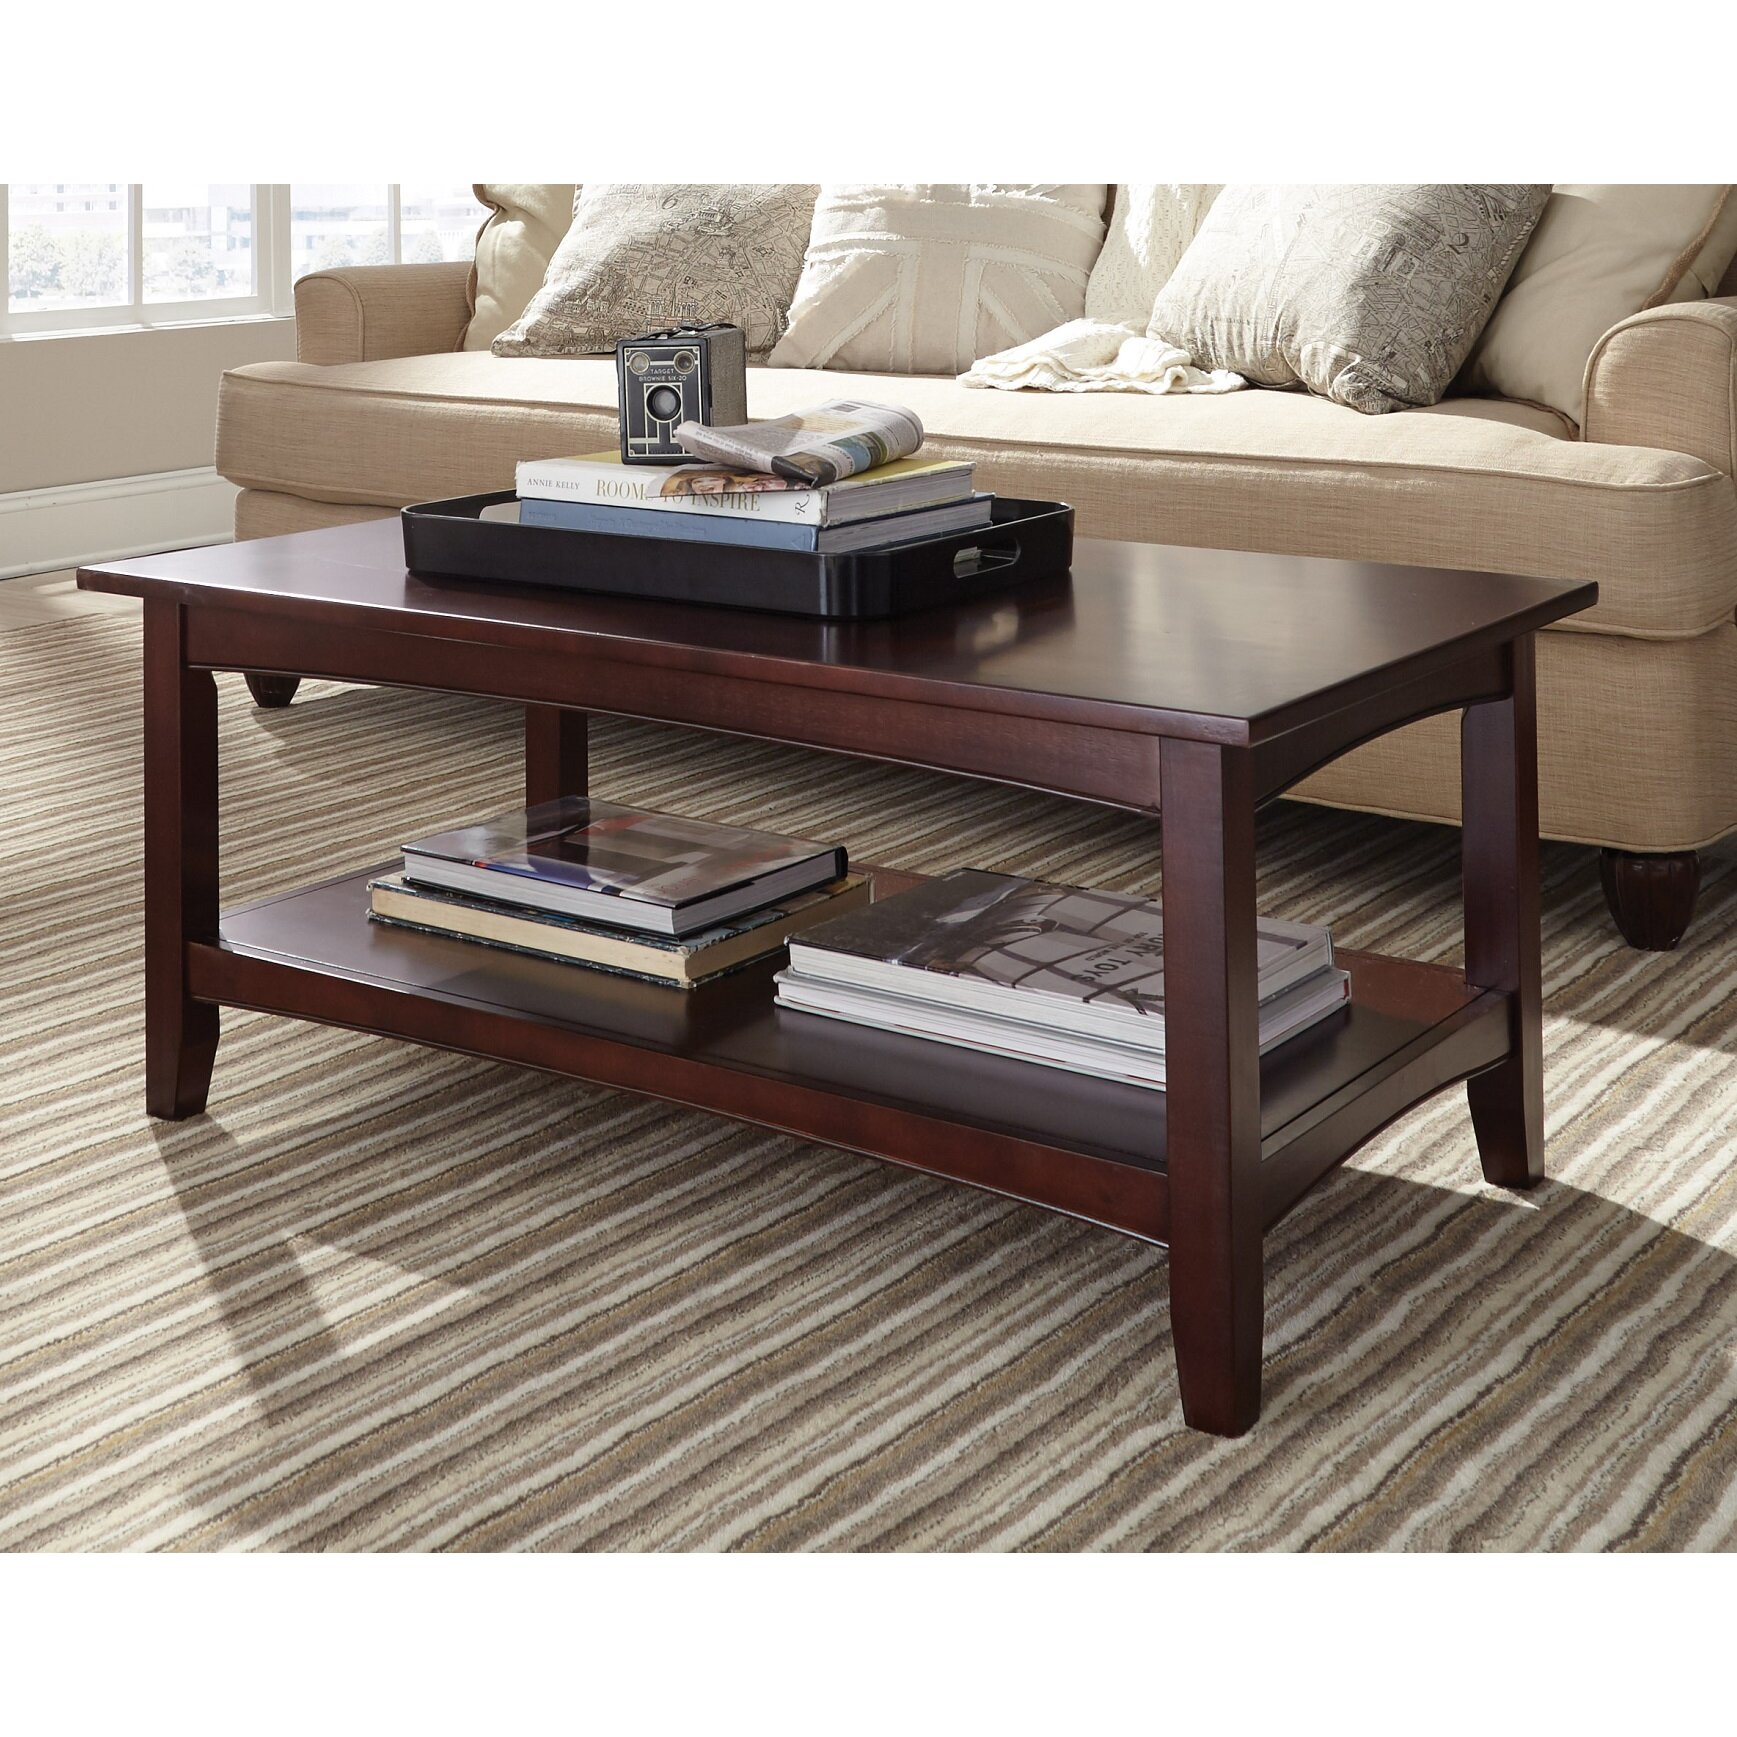 Bel Air Coffee Table Instacoffeetable